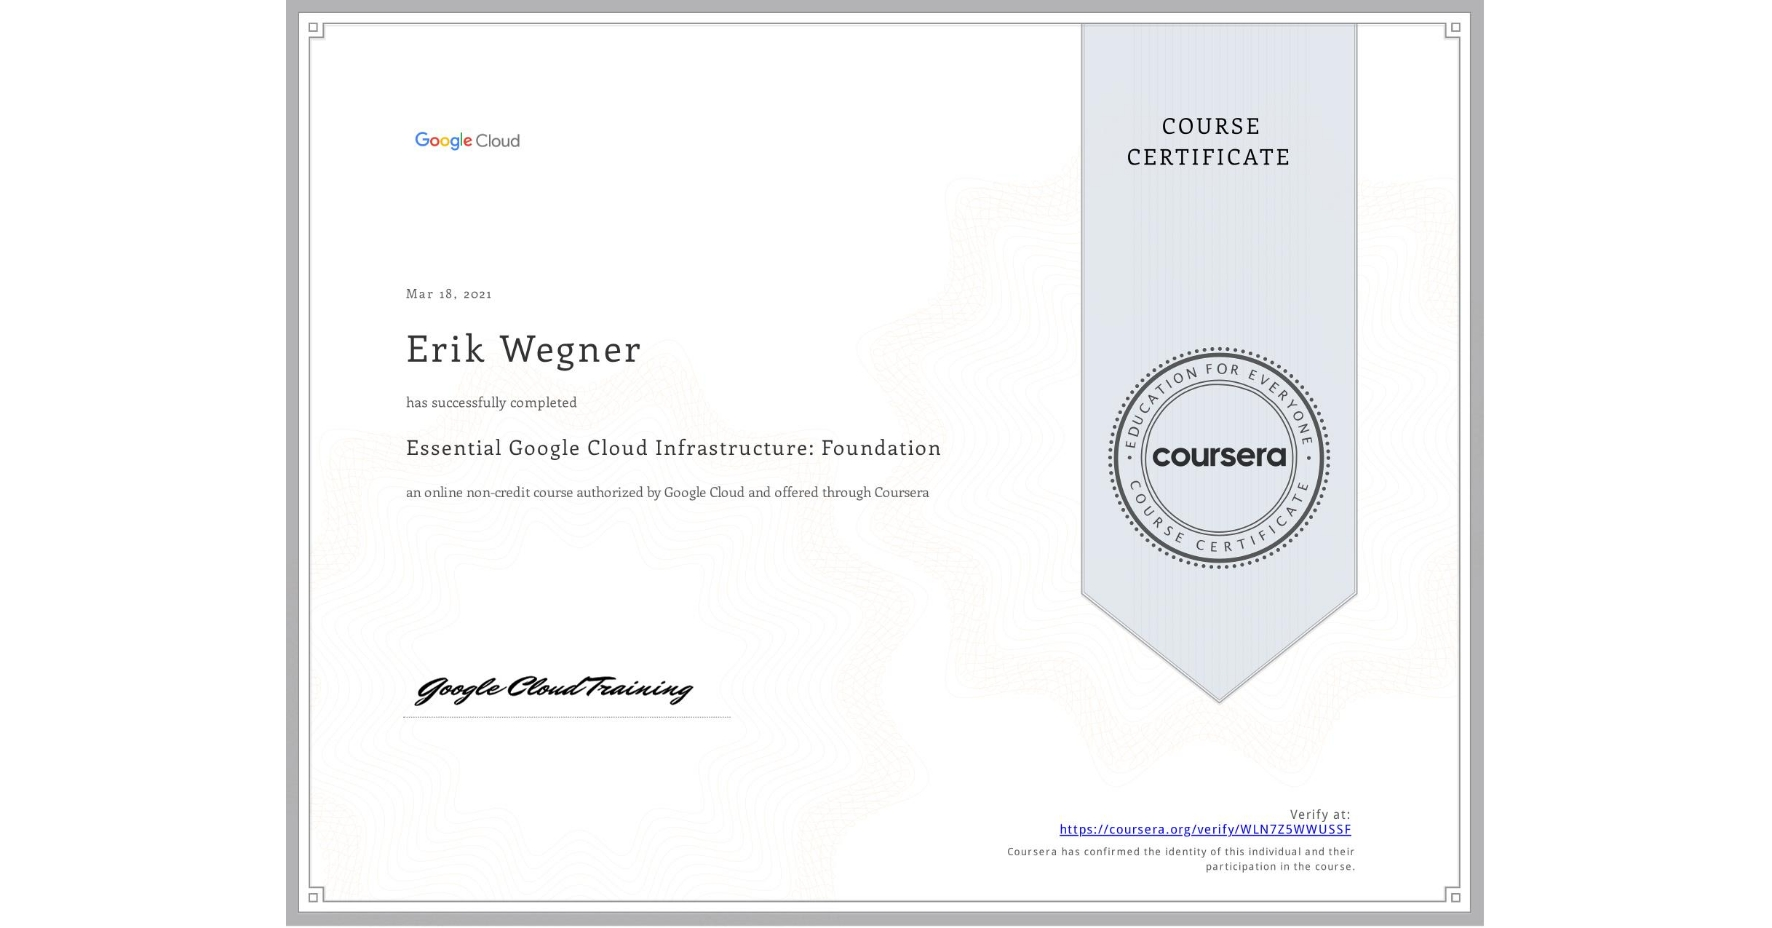 View certificate for Erik Wegner, Essential Google Cloud Infrastructure: Foundation, an online non-credit course authorized by Google Cloud and offered through Coursera